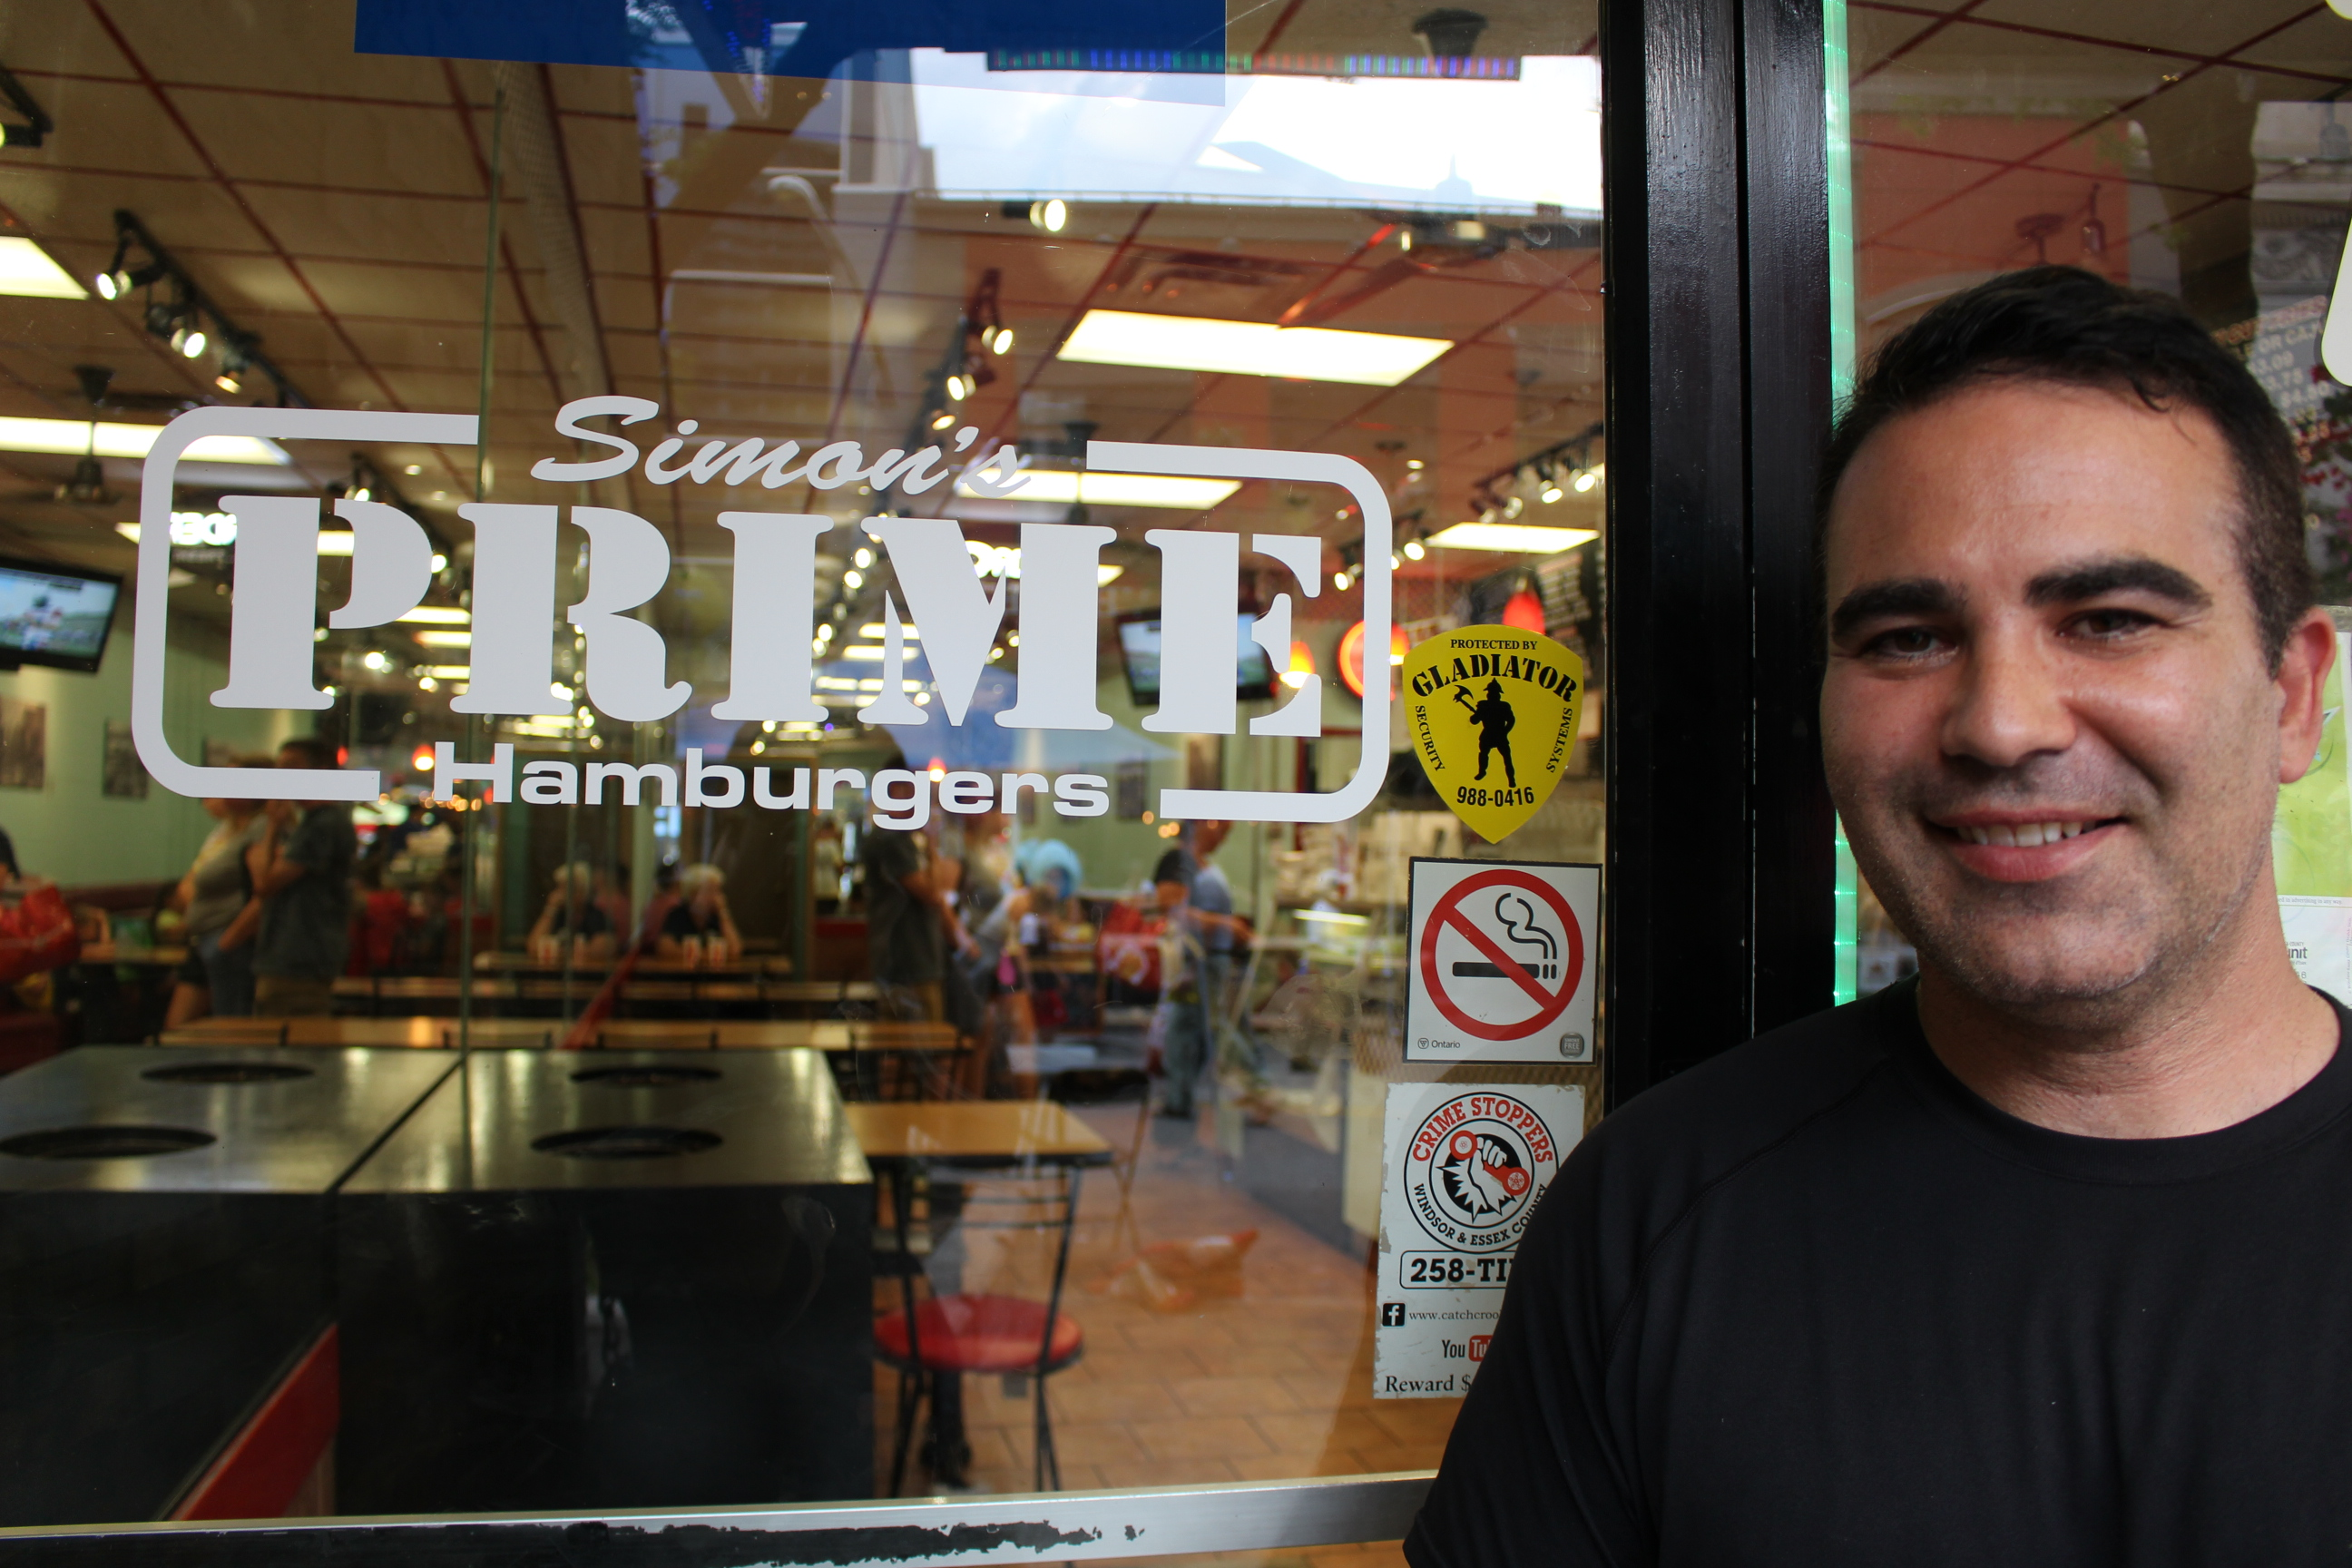 Simon Protopapas, owner of Simon's Prime Hamburgers, stands out front of his bruger joint in downtown Windsor on Ouellette Ave. on August 16, 2014. (Photo by Ricardo Veneza)